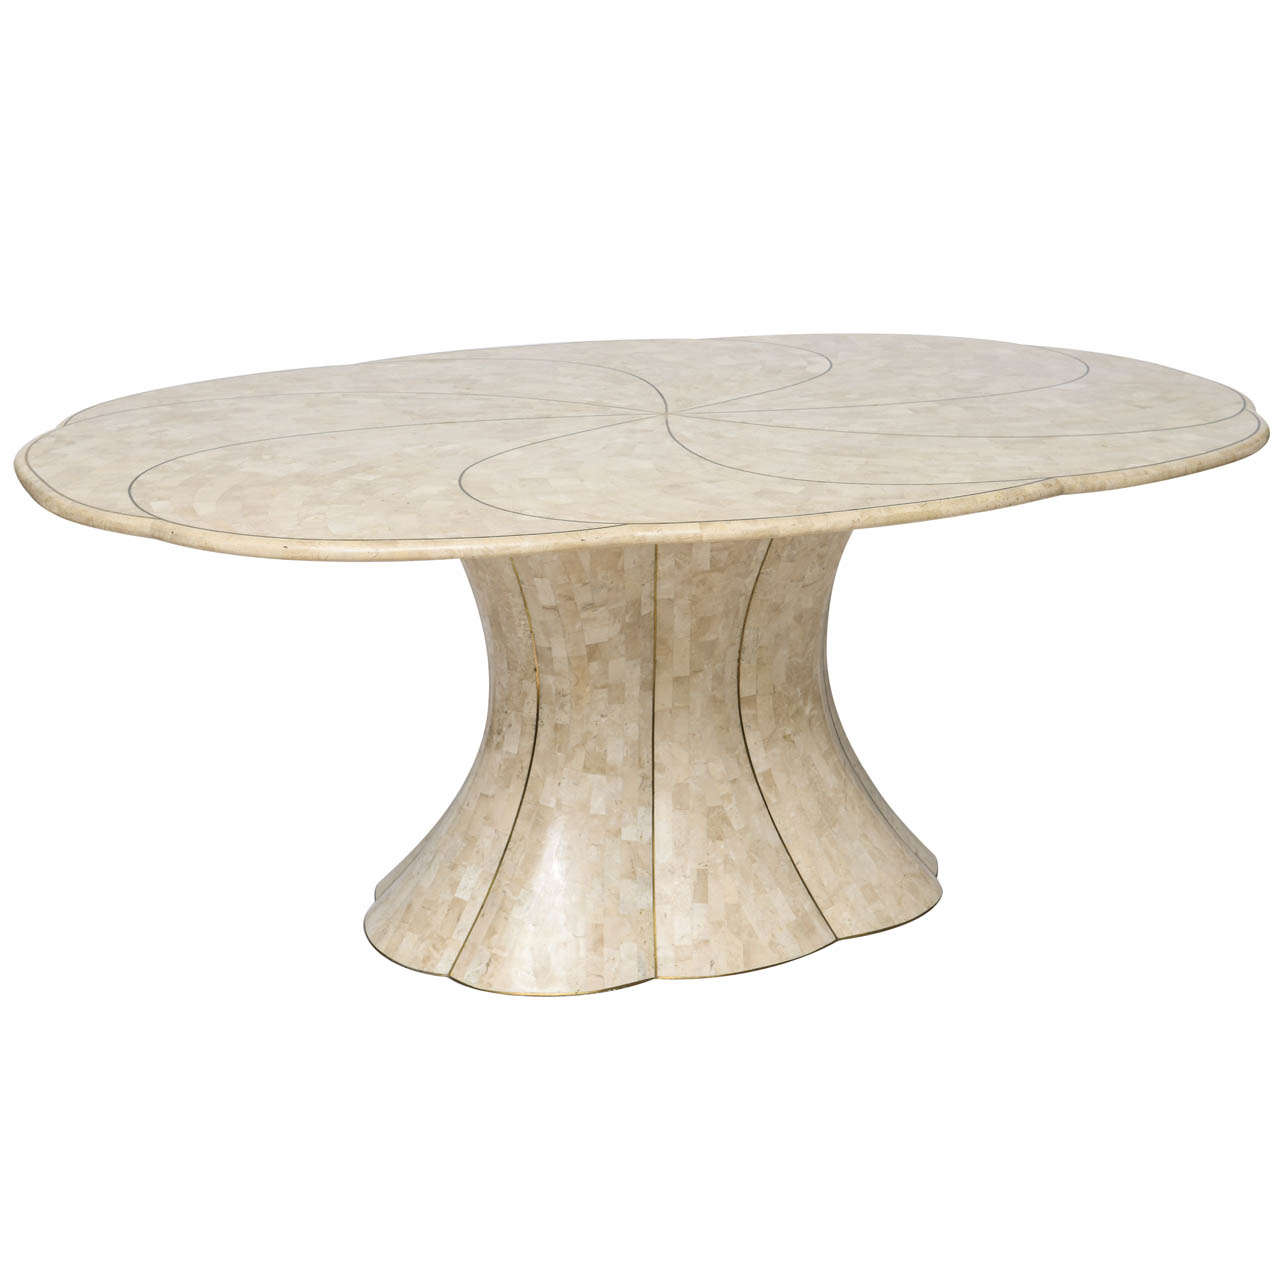 Maitland Smith Tessellated Stone Dining Table With Brass Inlays At 1stdibs